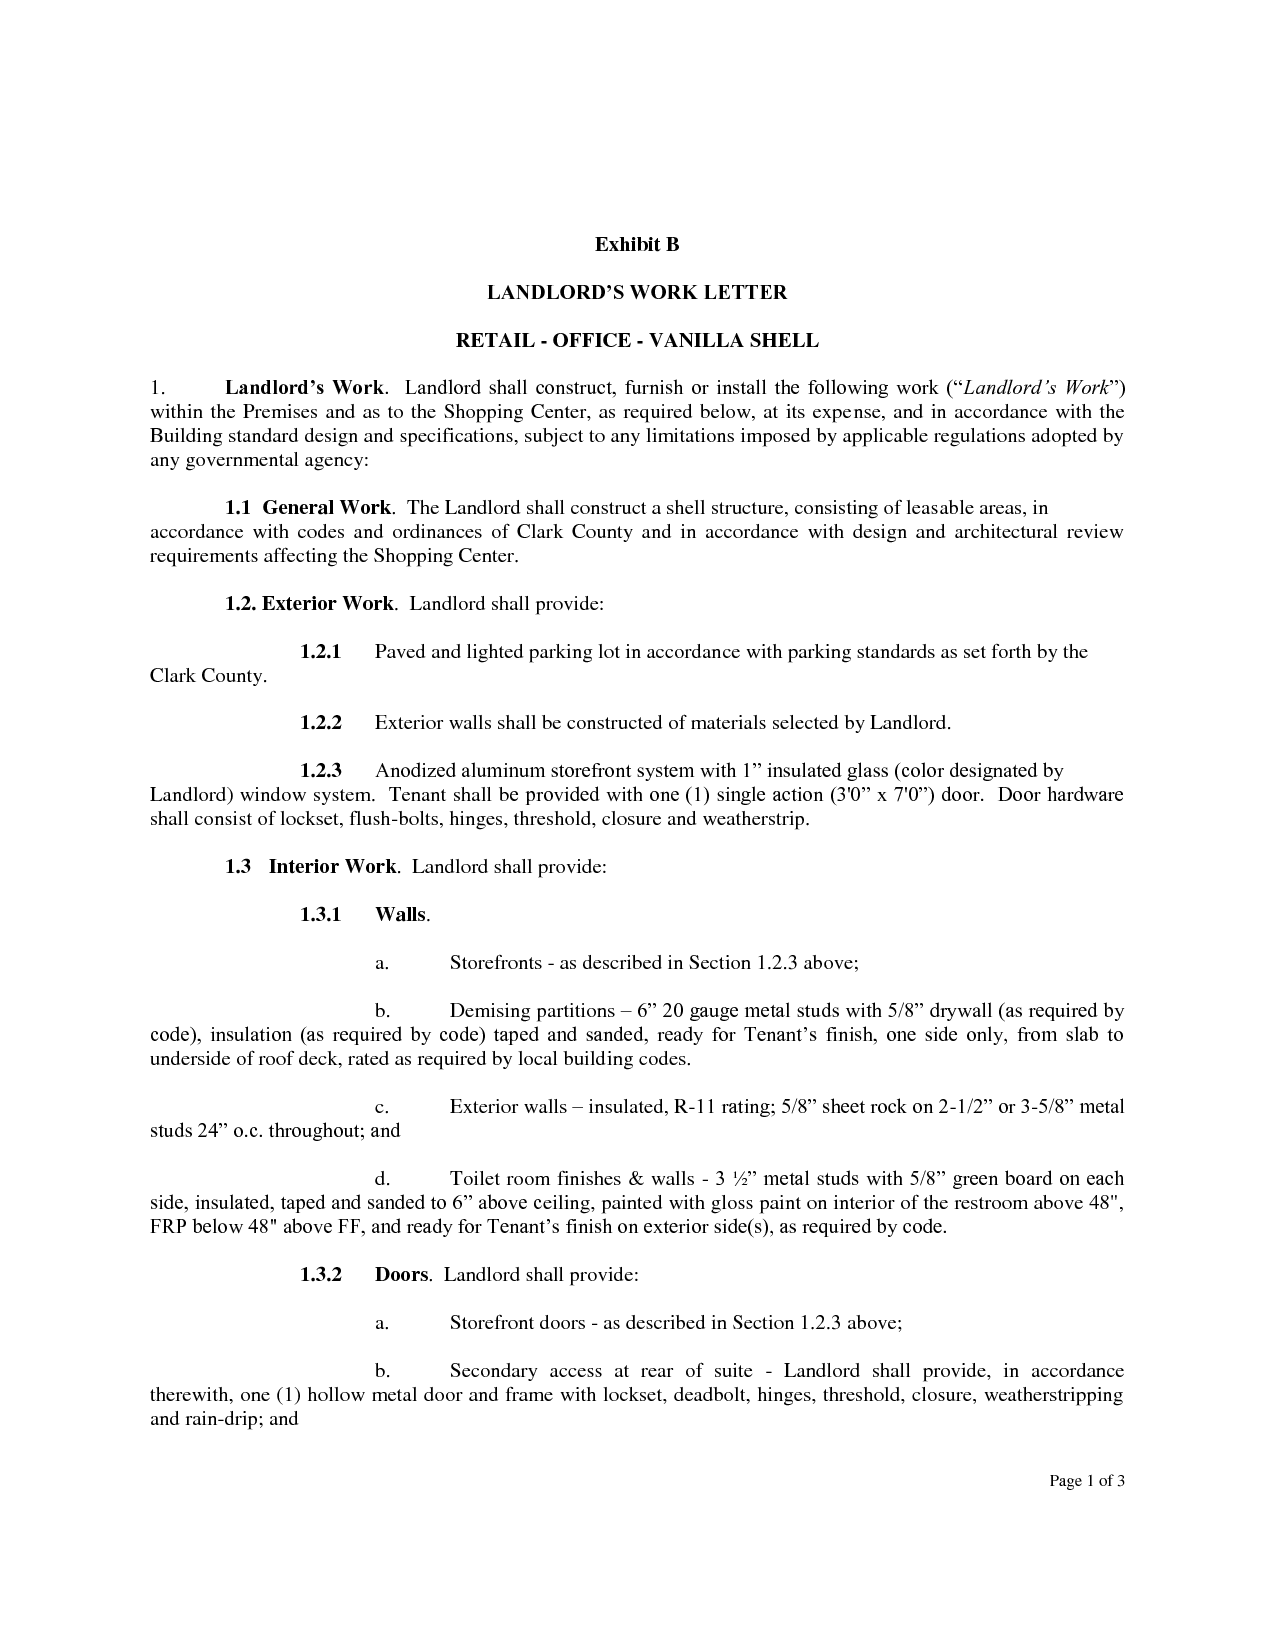 Certification letter from landlord certificate employer sample certification letter from landlord certificate employer sample texas landlords and tenants guide yadclub Choice Image